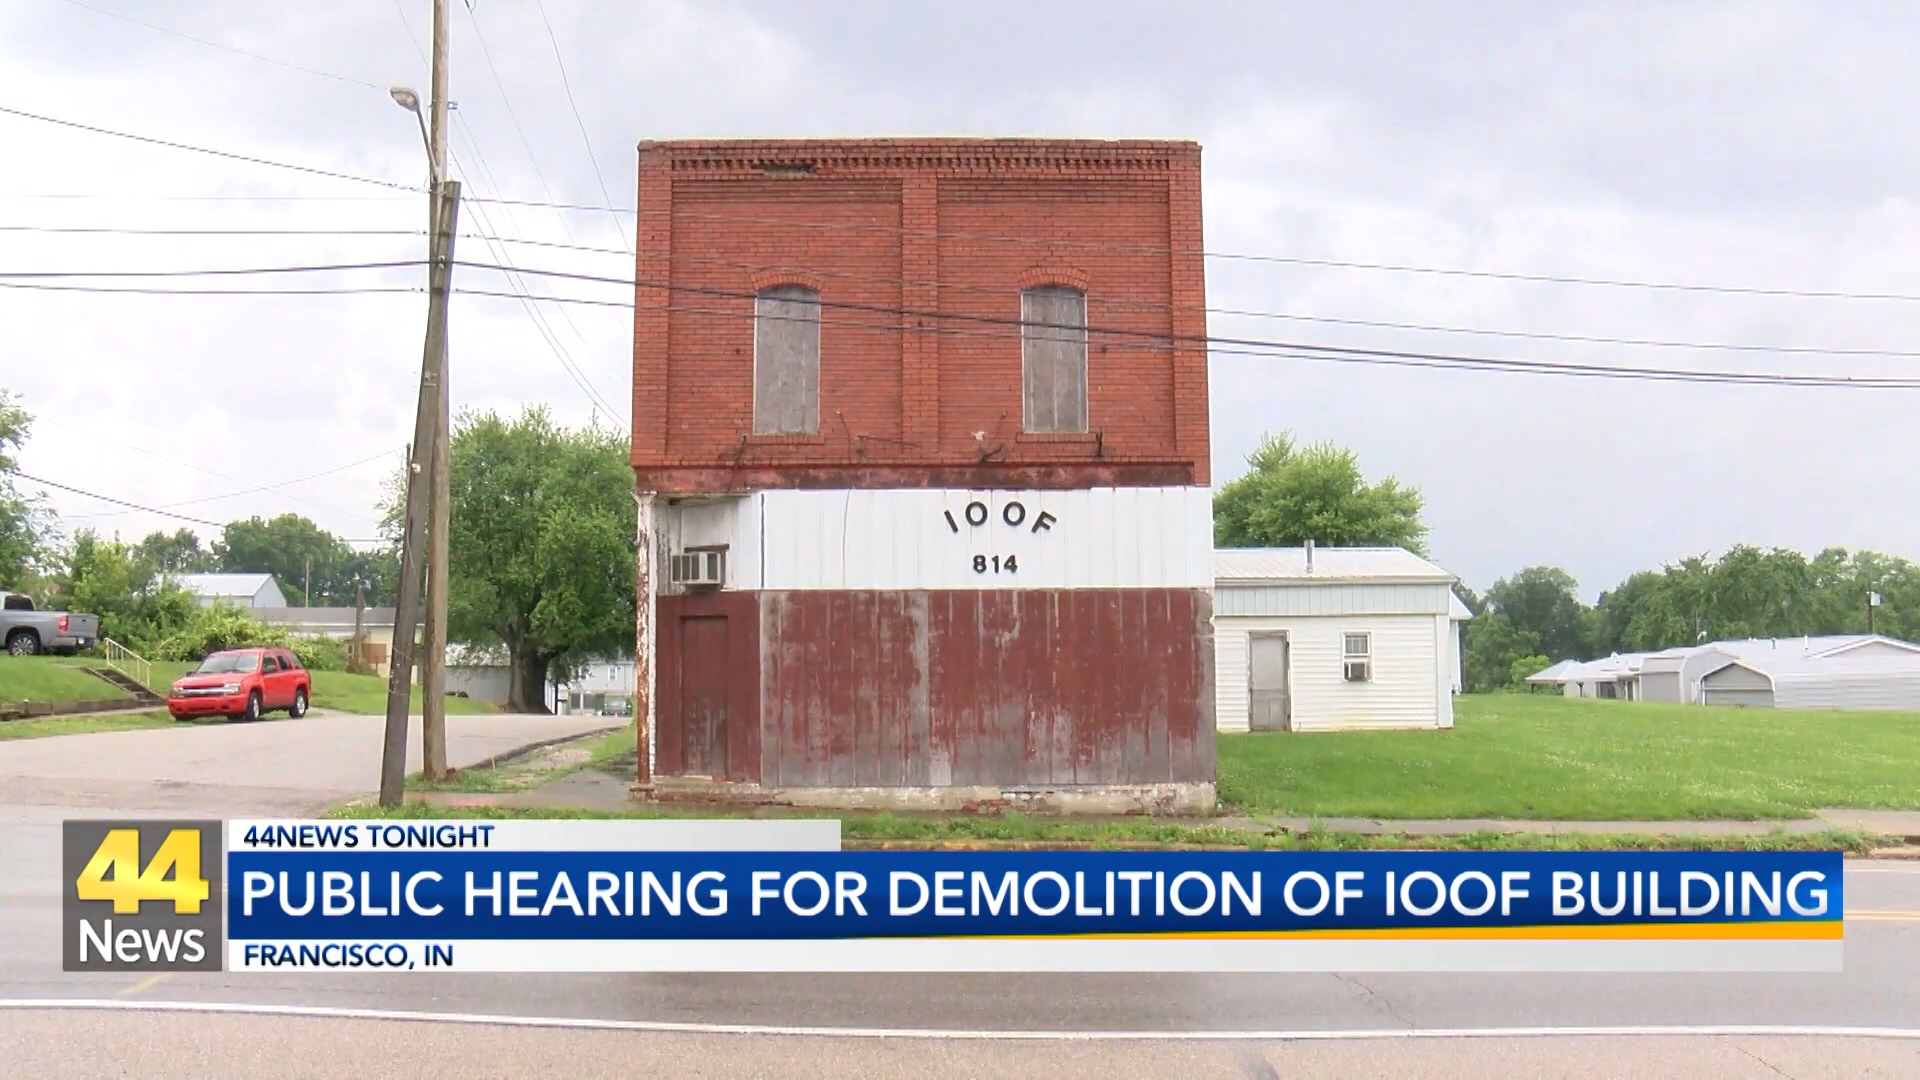 Image for Public Hearing for Demolition of IOOF Building in Francisco